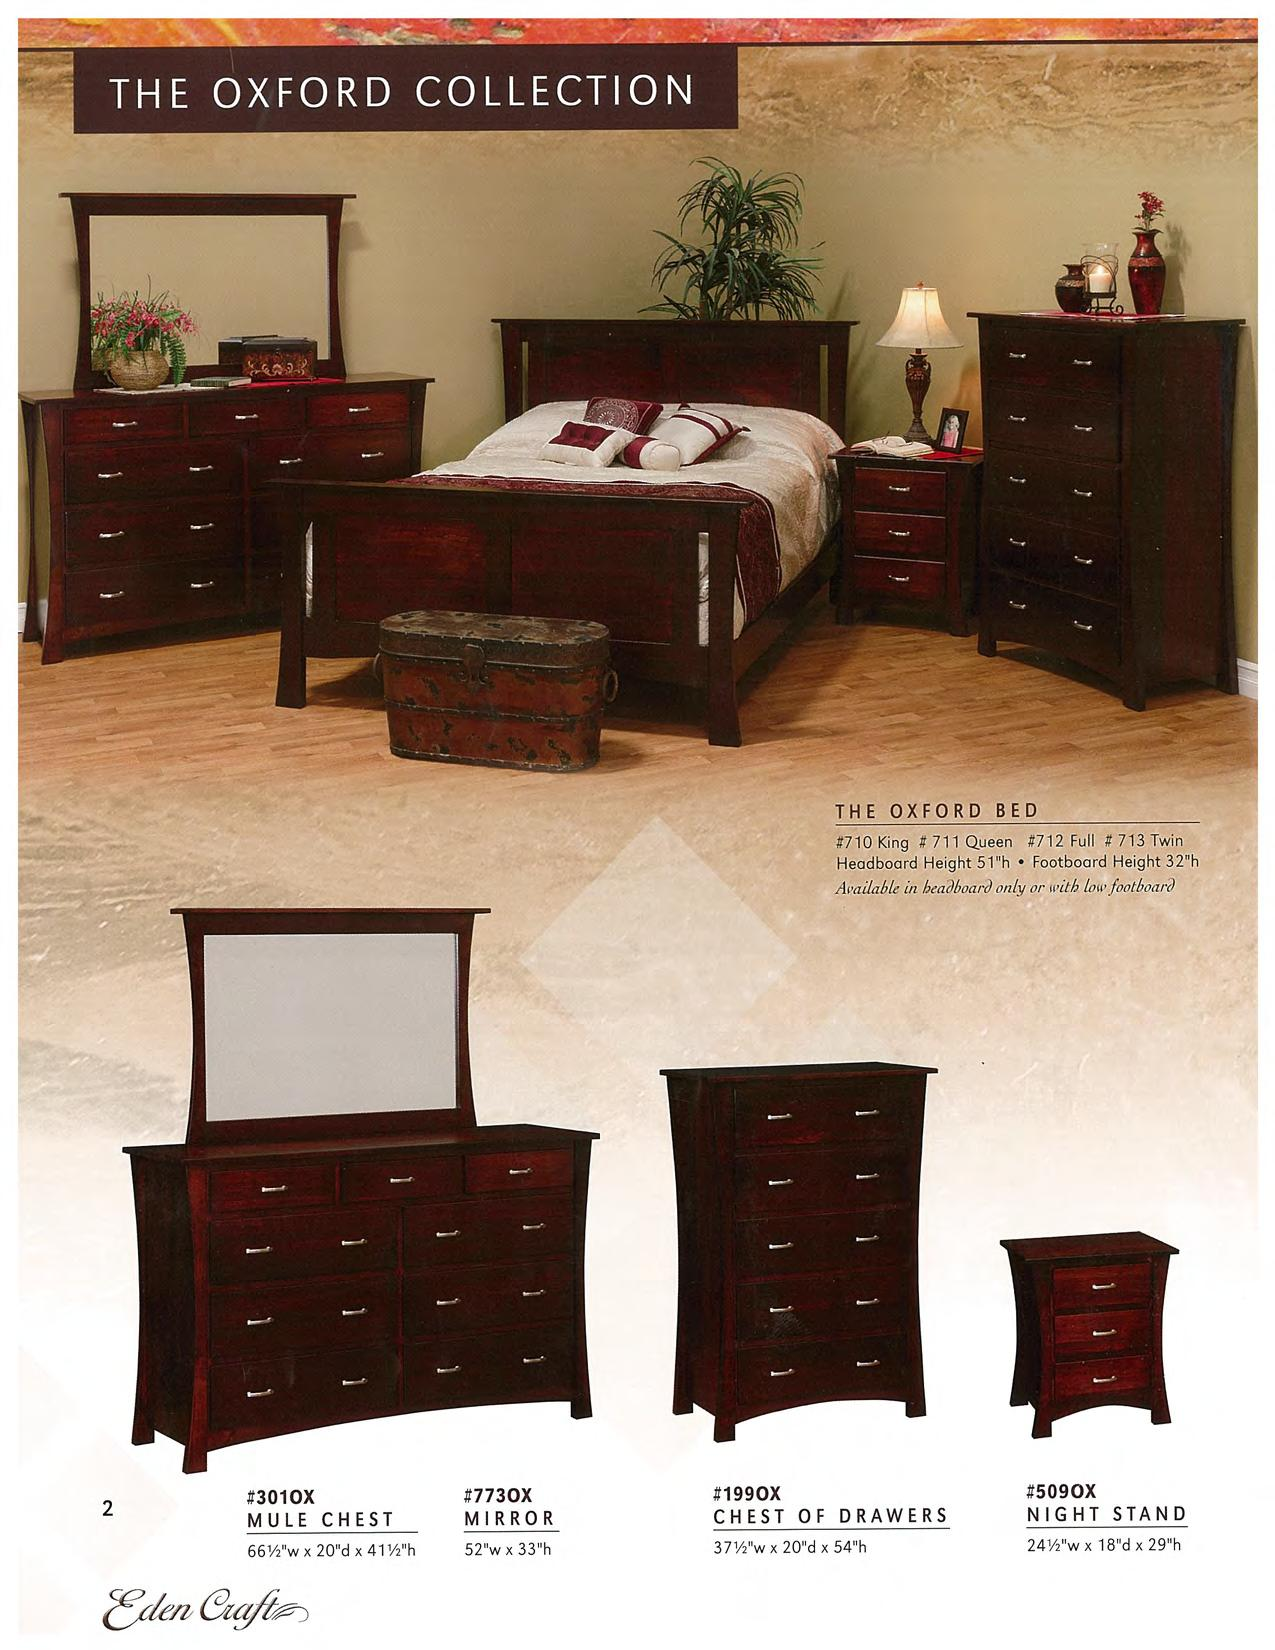 furniture-page-002